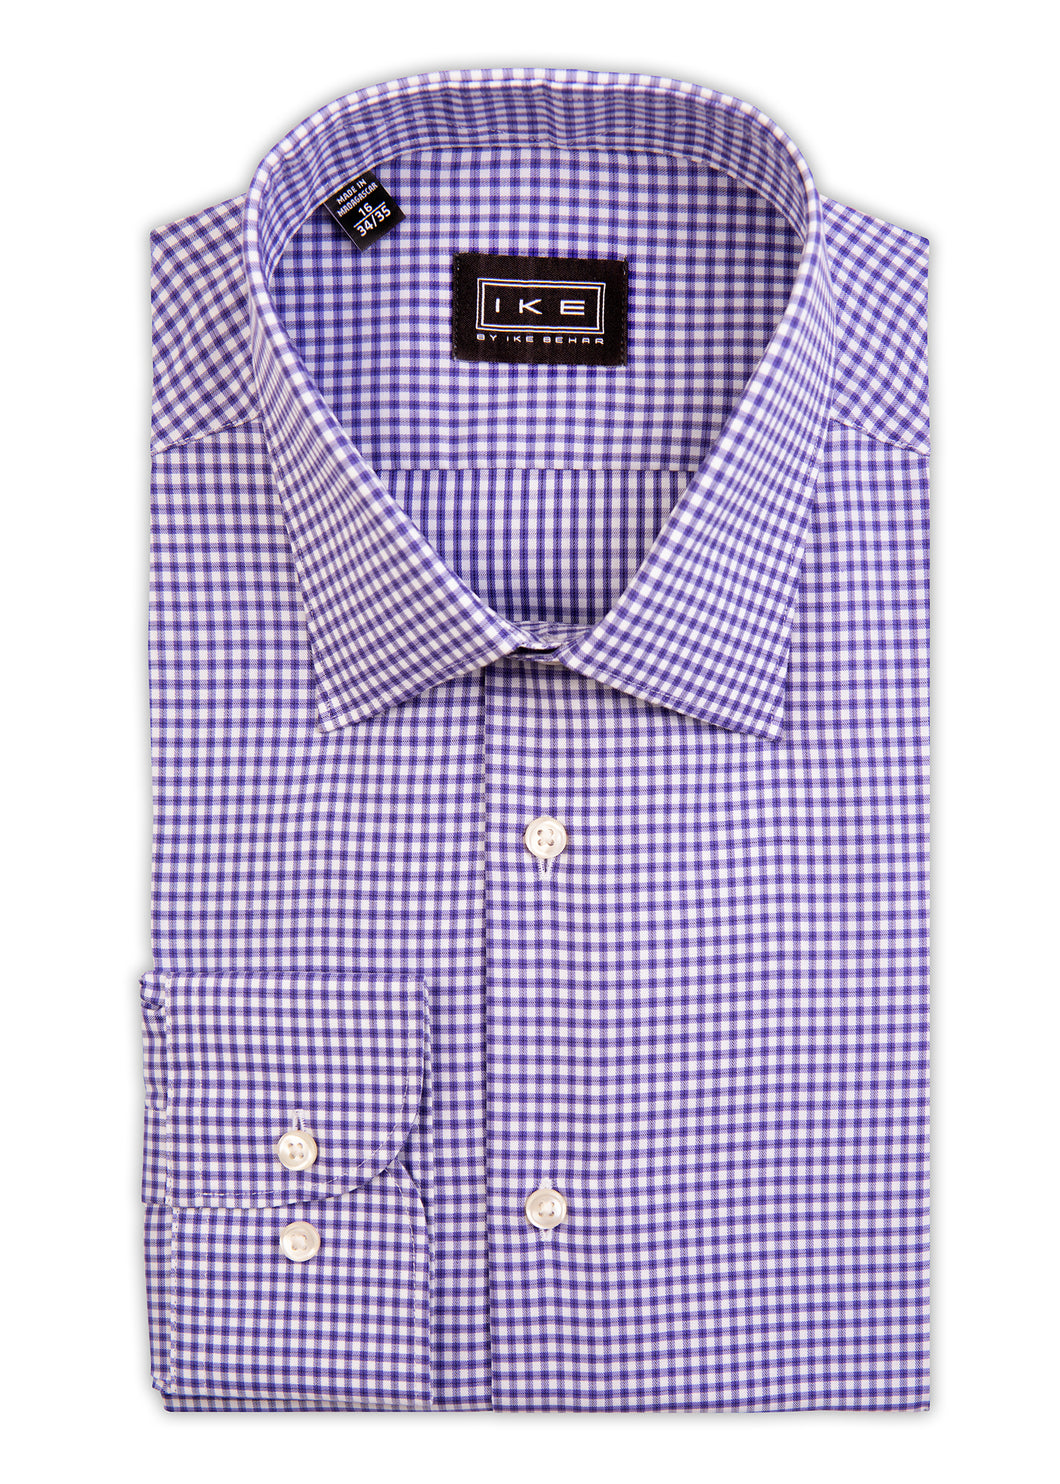 Purple Mini-Check Ike by Ike Behar Dress Shirt